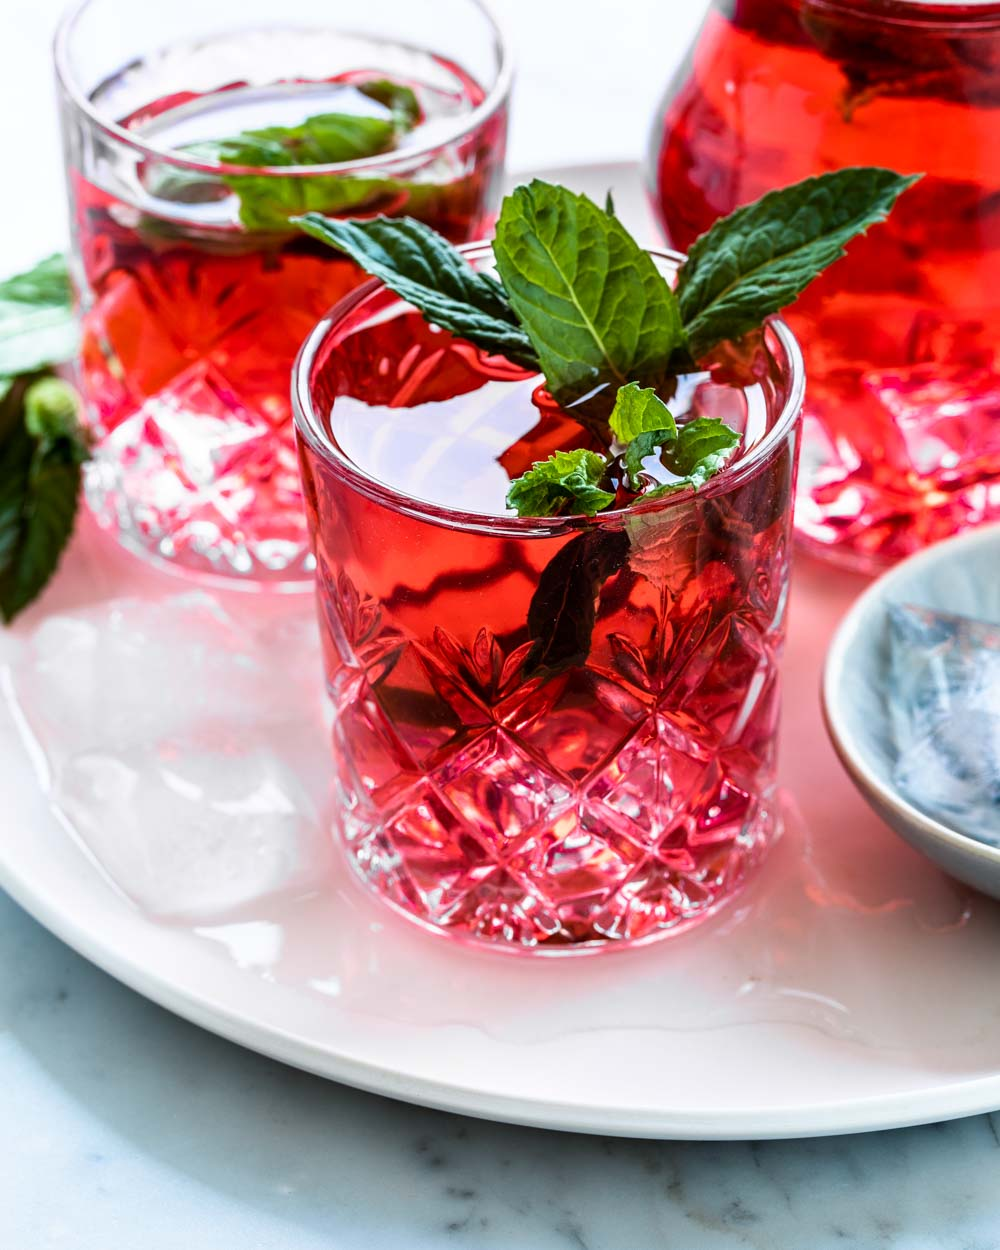 red cold hibiscus tea in glass with fresh mint leaves on white plate in front of a glass and a carafe with hibiscus tea